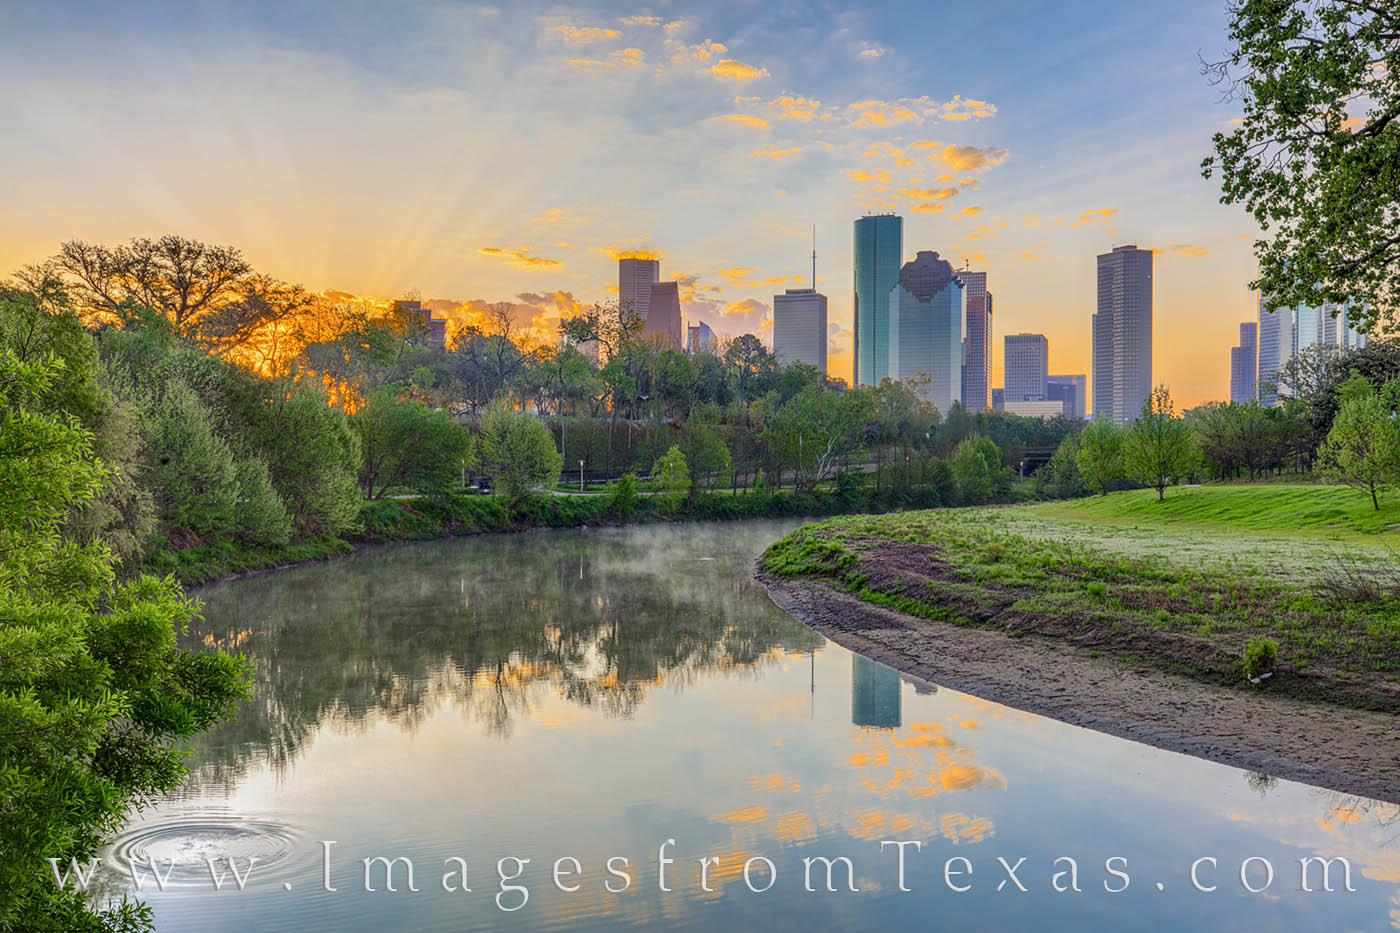 Along the quiet paths near Buffalo Bayou, the downtown area of Houston is quiet and peaceful. Overhead, the sun spreads its first...